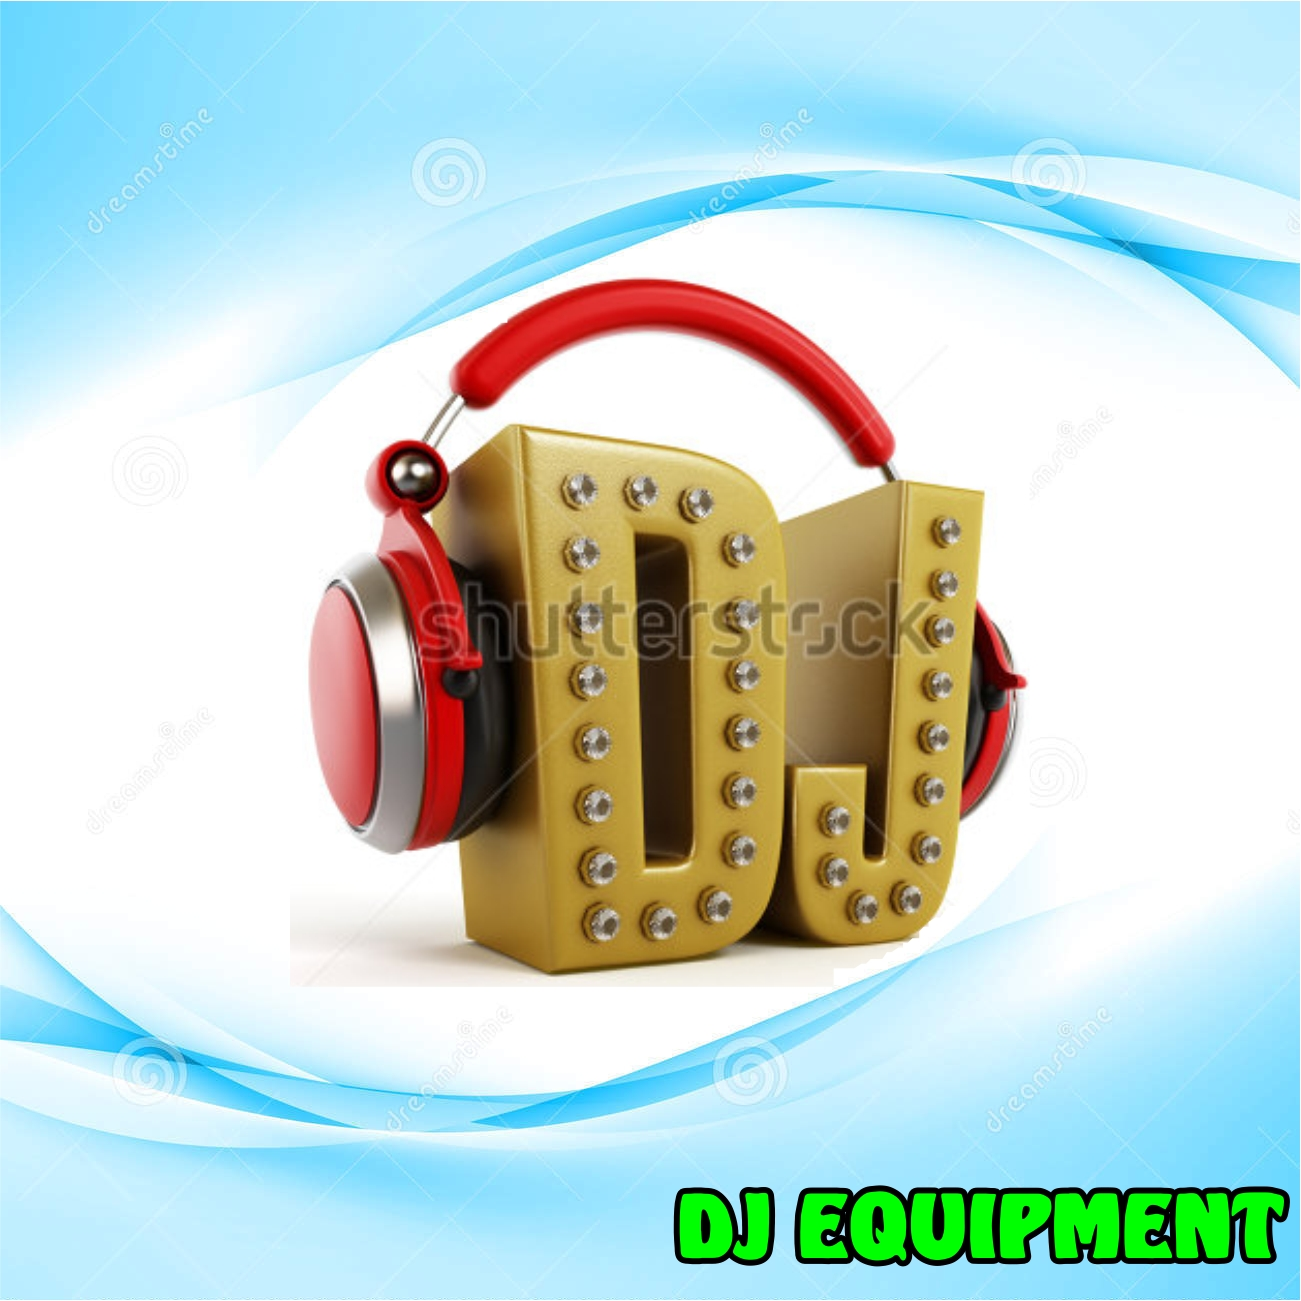 CLICK ME  DJ EQUIPMENT DISCO SOUND AUDIO GRAVITY DJ STORE 0315072463 DJ SOUND AUDIO EQUIPMENT FOR SALE CHEAPEST DEAL IN ALL PIONEER DJ EQUIPMENT IN DURBAN GRAVITY SOUND AND LIGHTINNG WAREHOUSE 0315072736